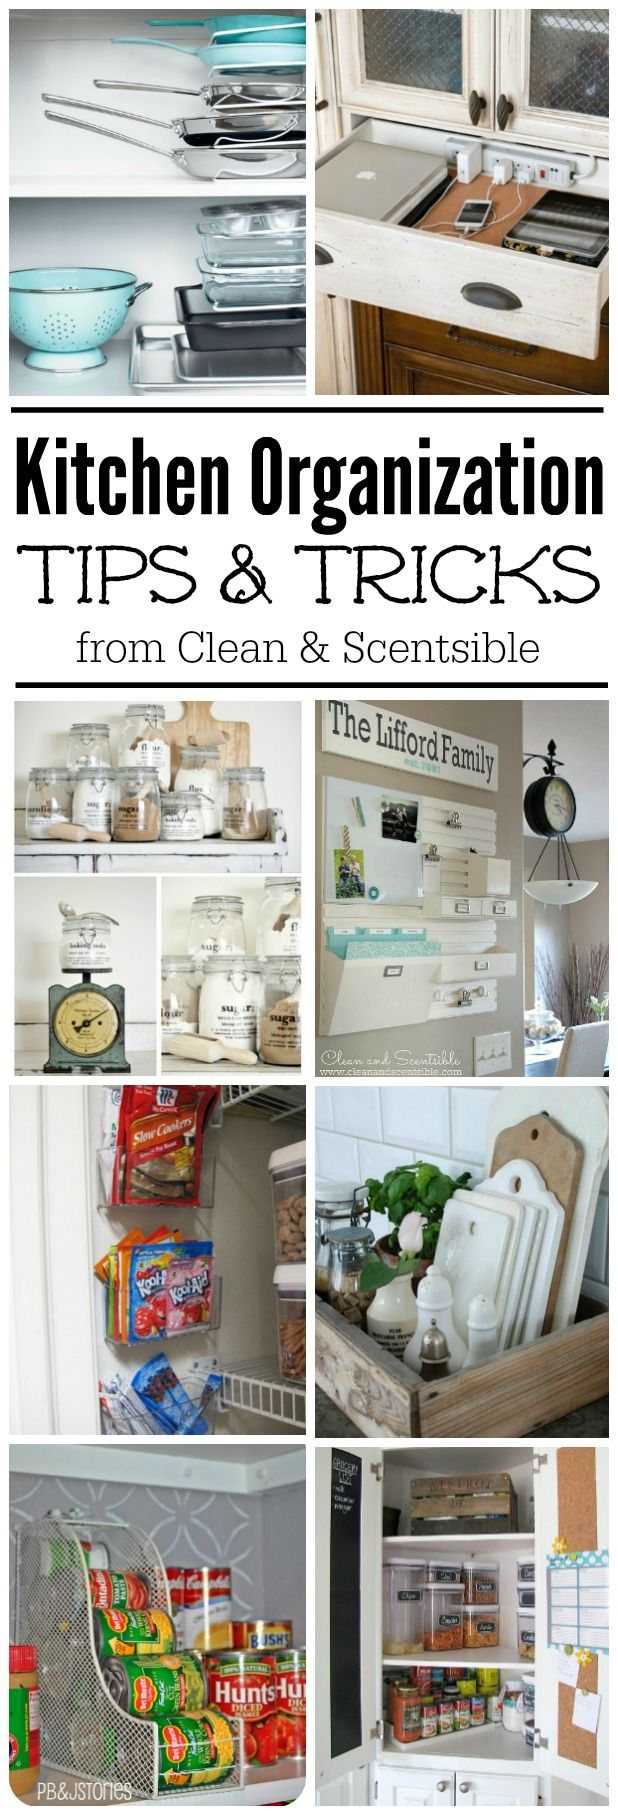 Check out these easy kitchen organization ideas that anyone can do! Get your kitchen back in tip top shape in no time!